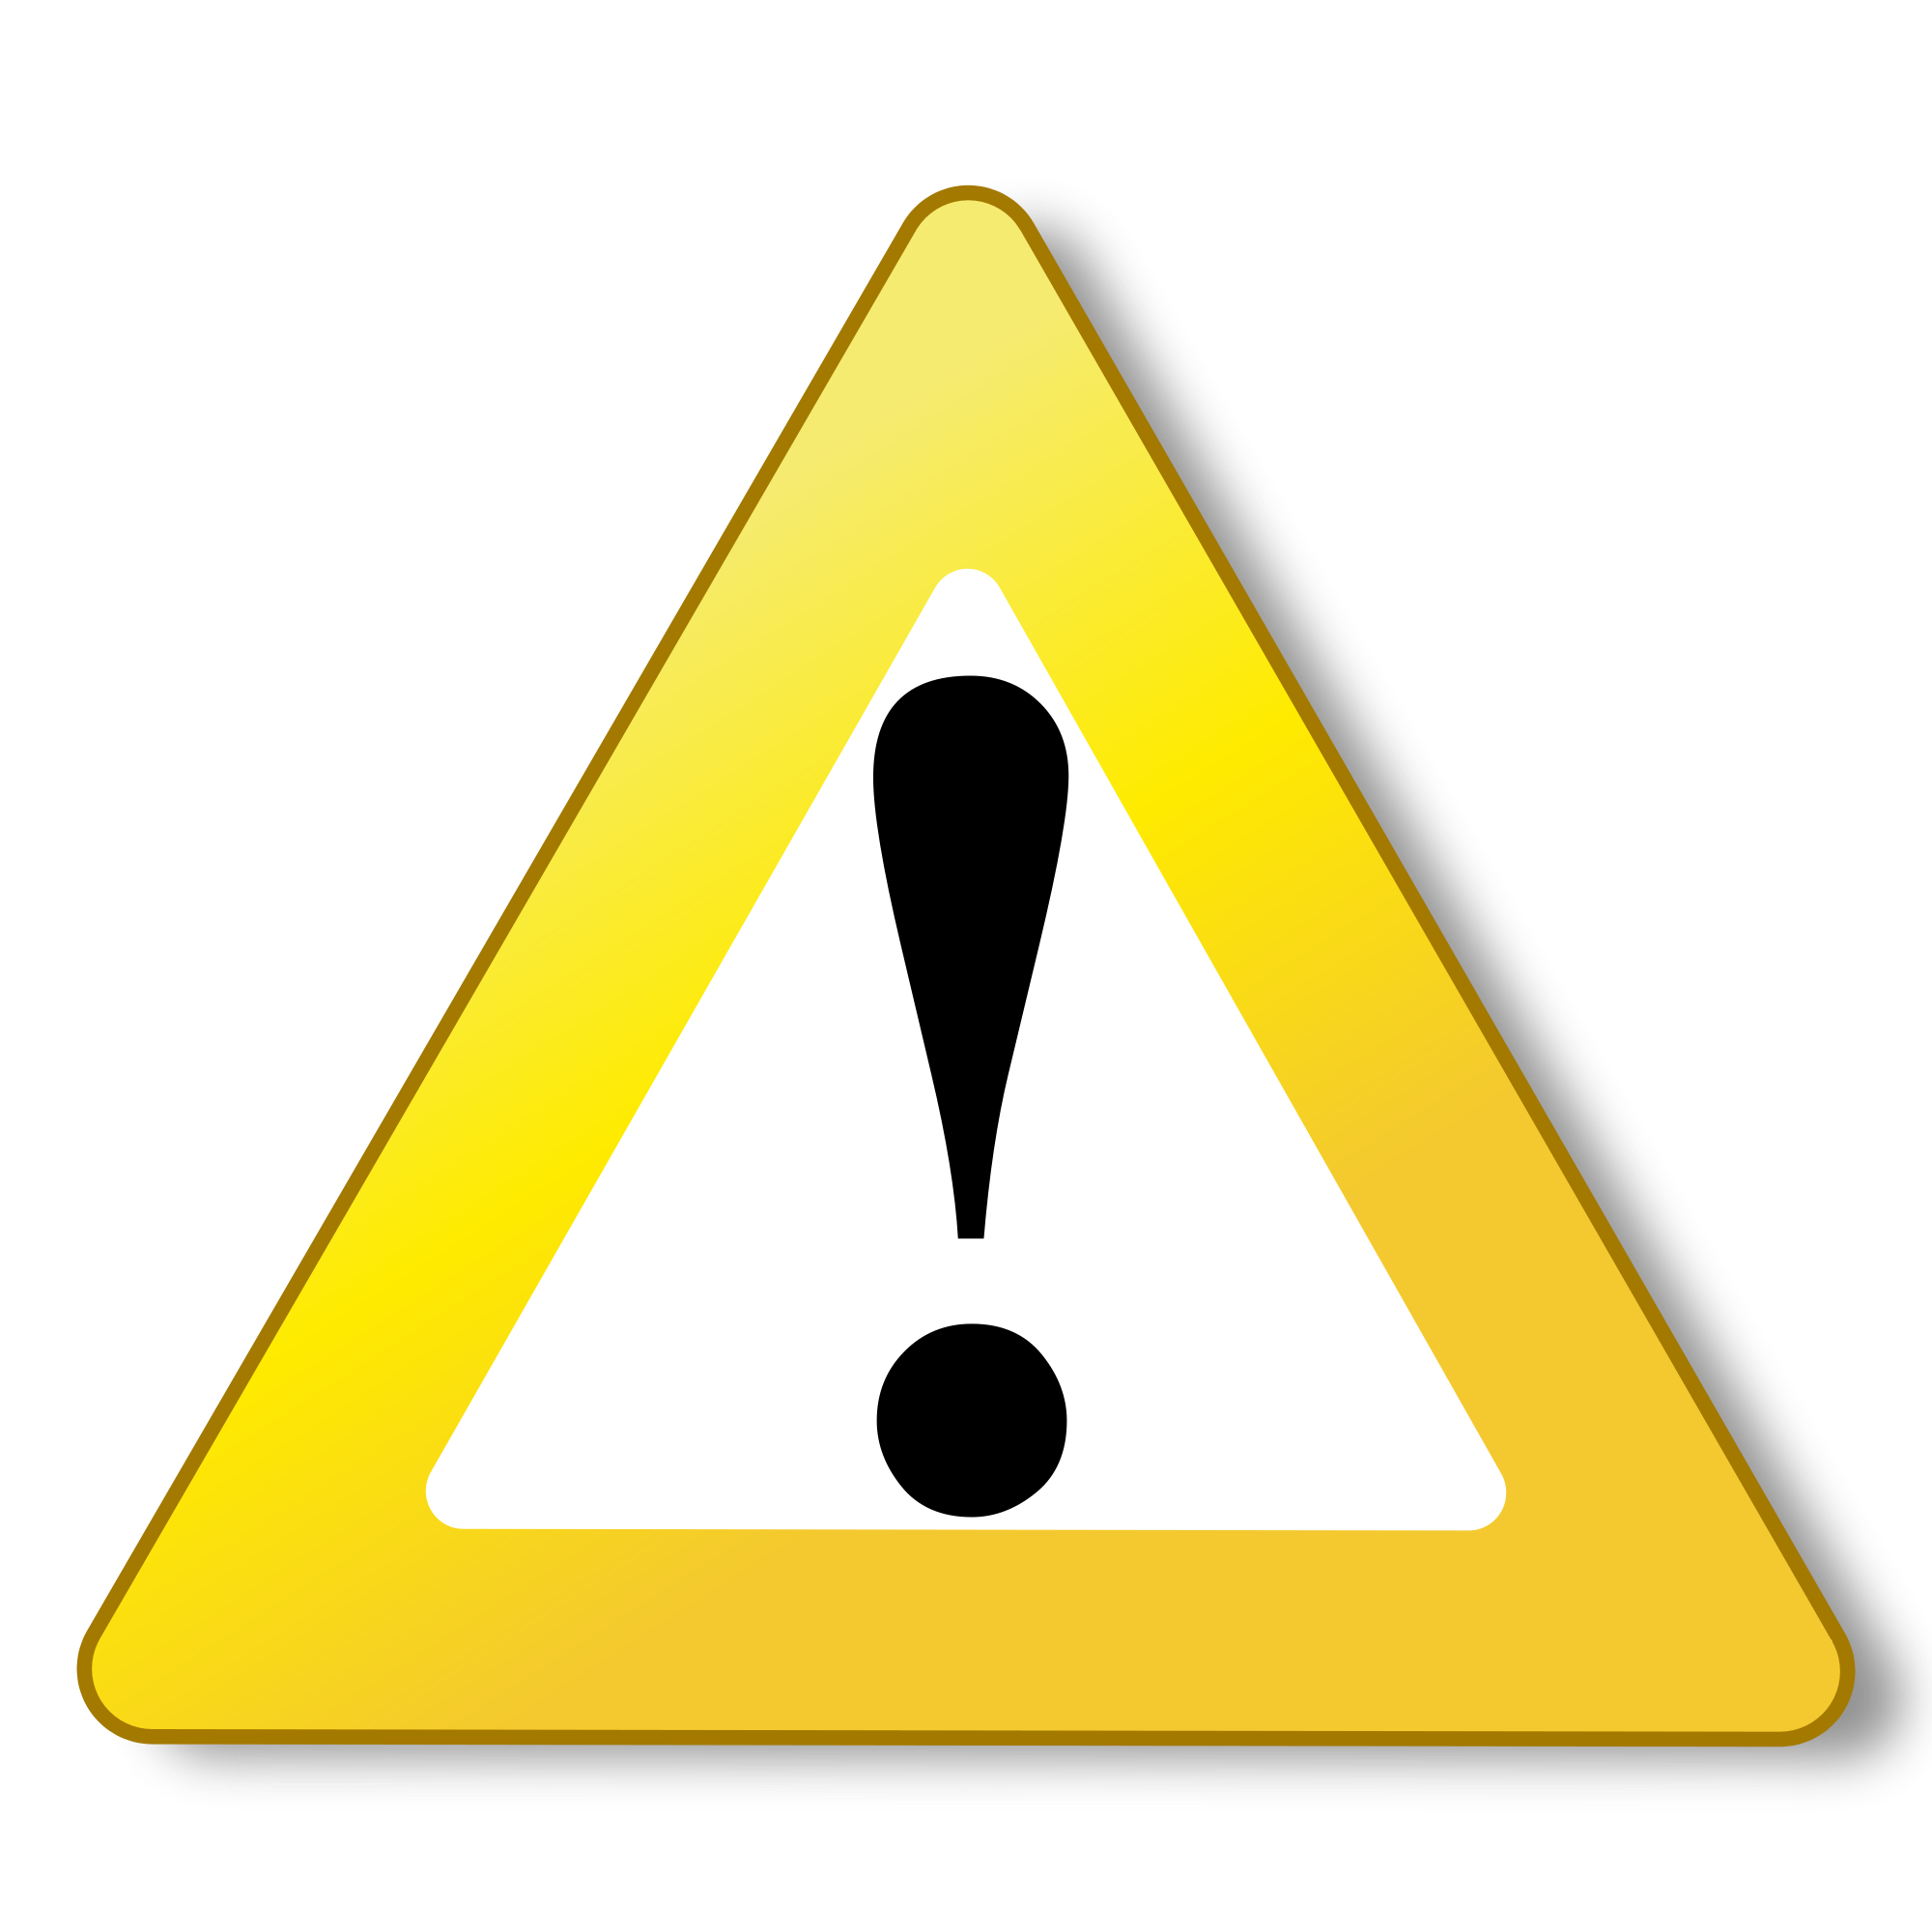 Warning png icon. Yellow free icons and